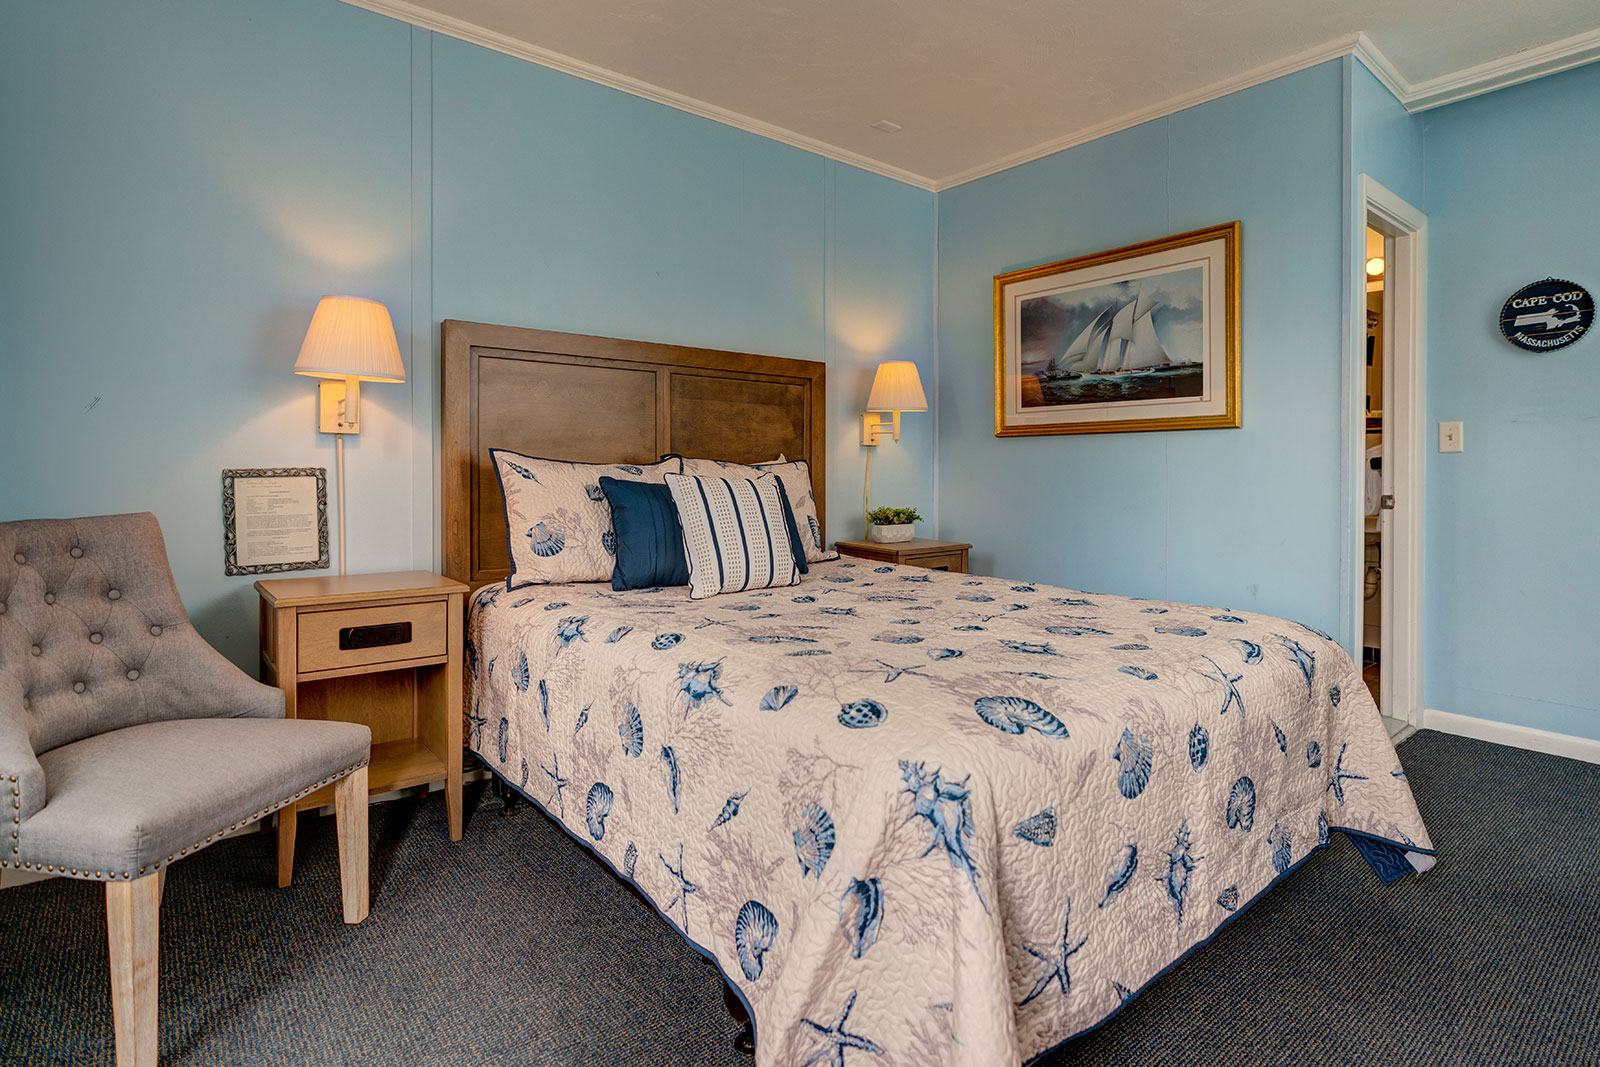 With a panoramic view overlooking our grounds and direct access to the south facing porch, the Master Suite provides warmth and brightness for a peaceful getaway.